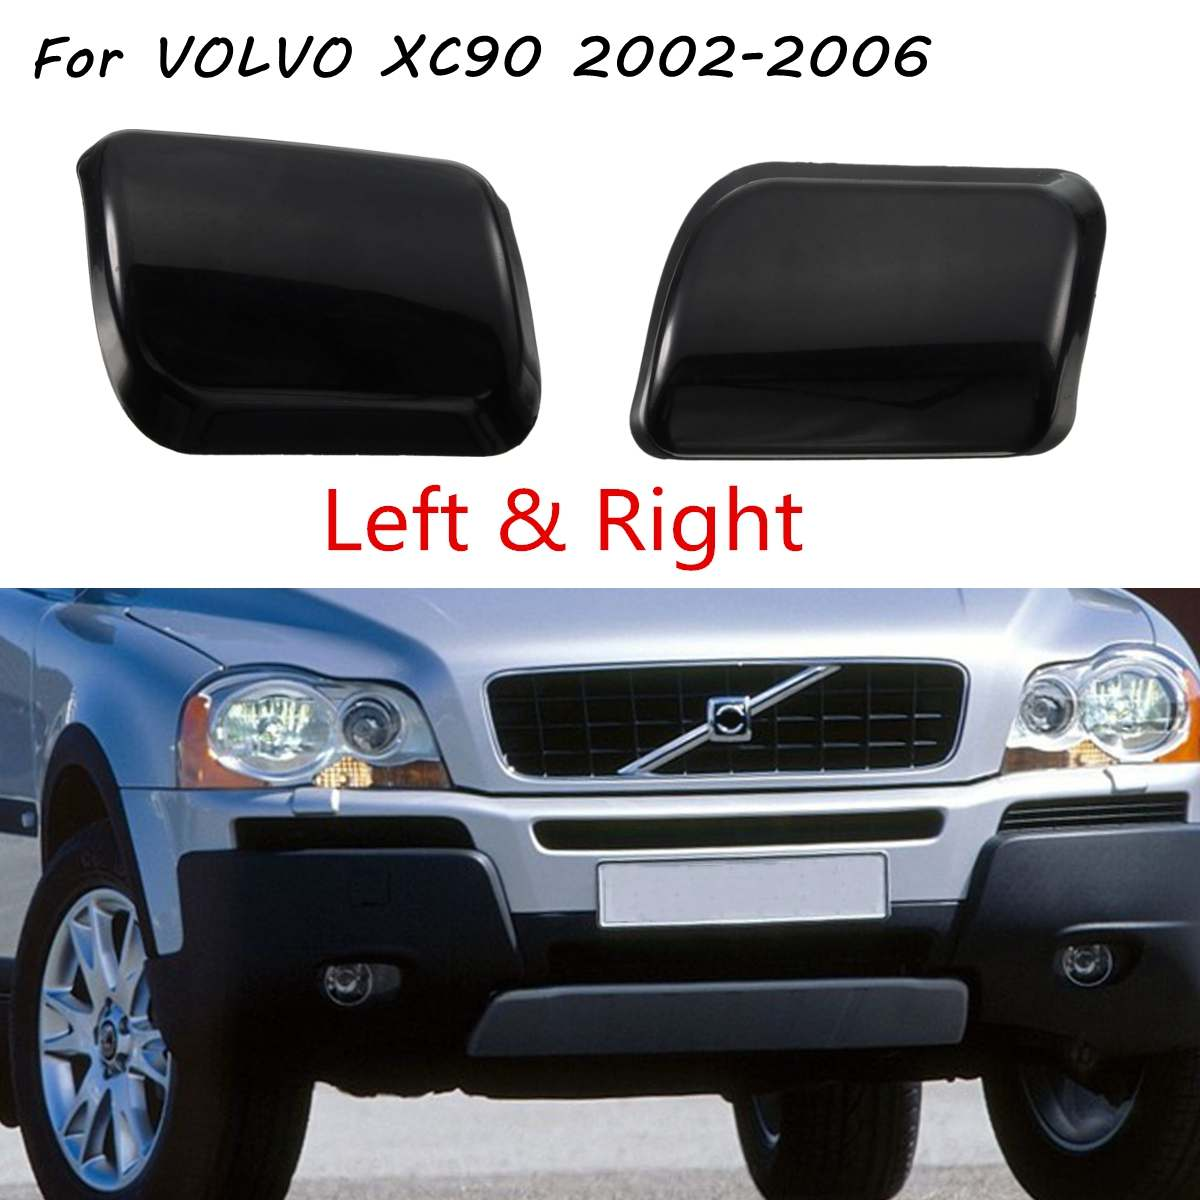 Front Bumper Headlamp Headlight Lamp Washer Jet Nozzle  Cover Cap  For VOLVO XC90 2002 2003 2004 2005 2006